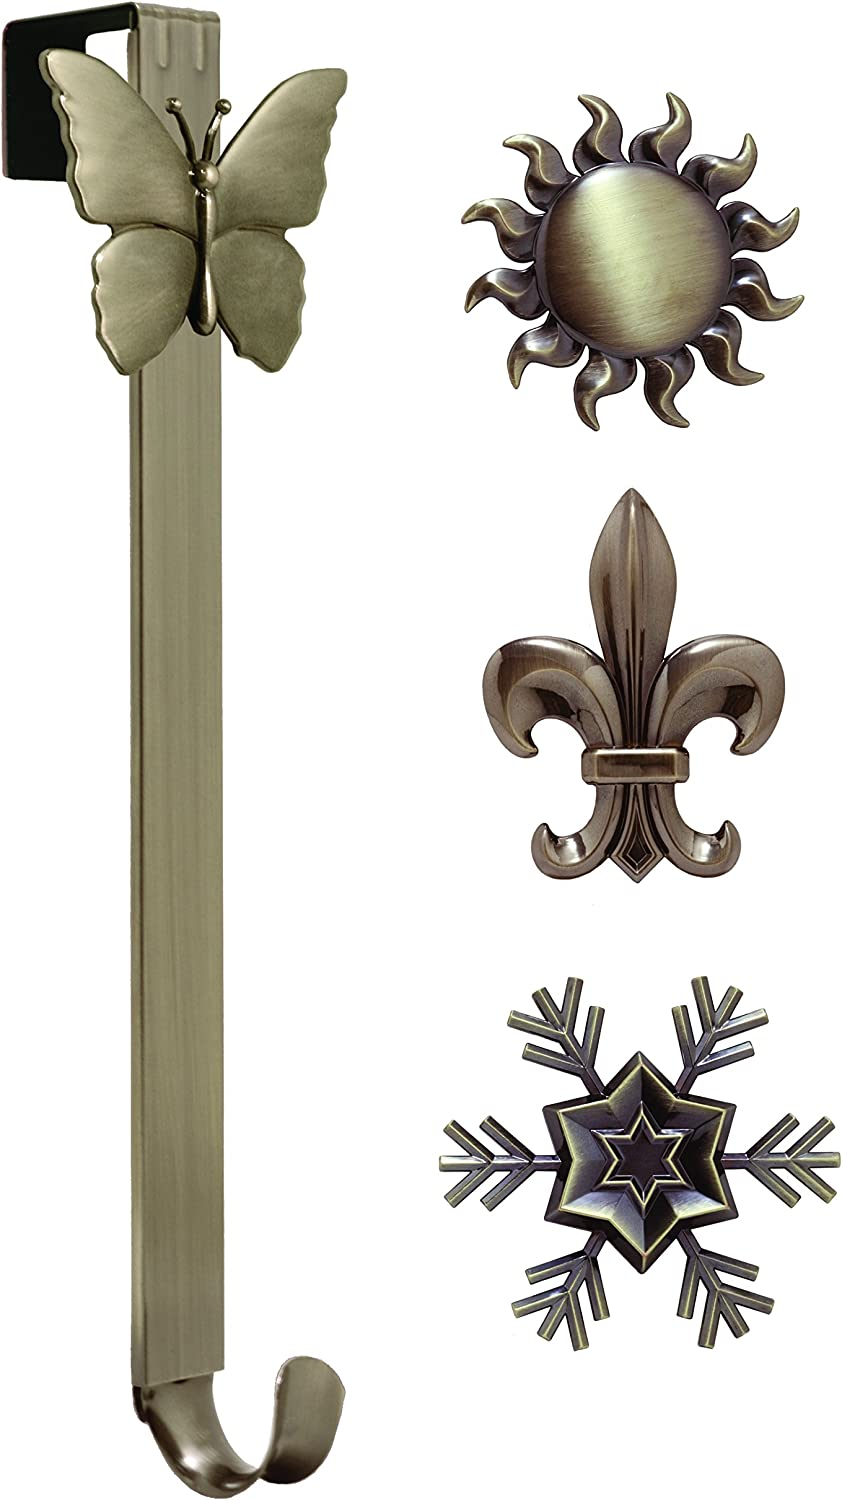 Haute Decor Adapt Adjustable Length Wreath Hanger with Interchangeable Icons (Oil-Rubbed Bronze-Sun/Snowflake/Butterfly/Fleur de lis)